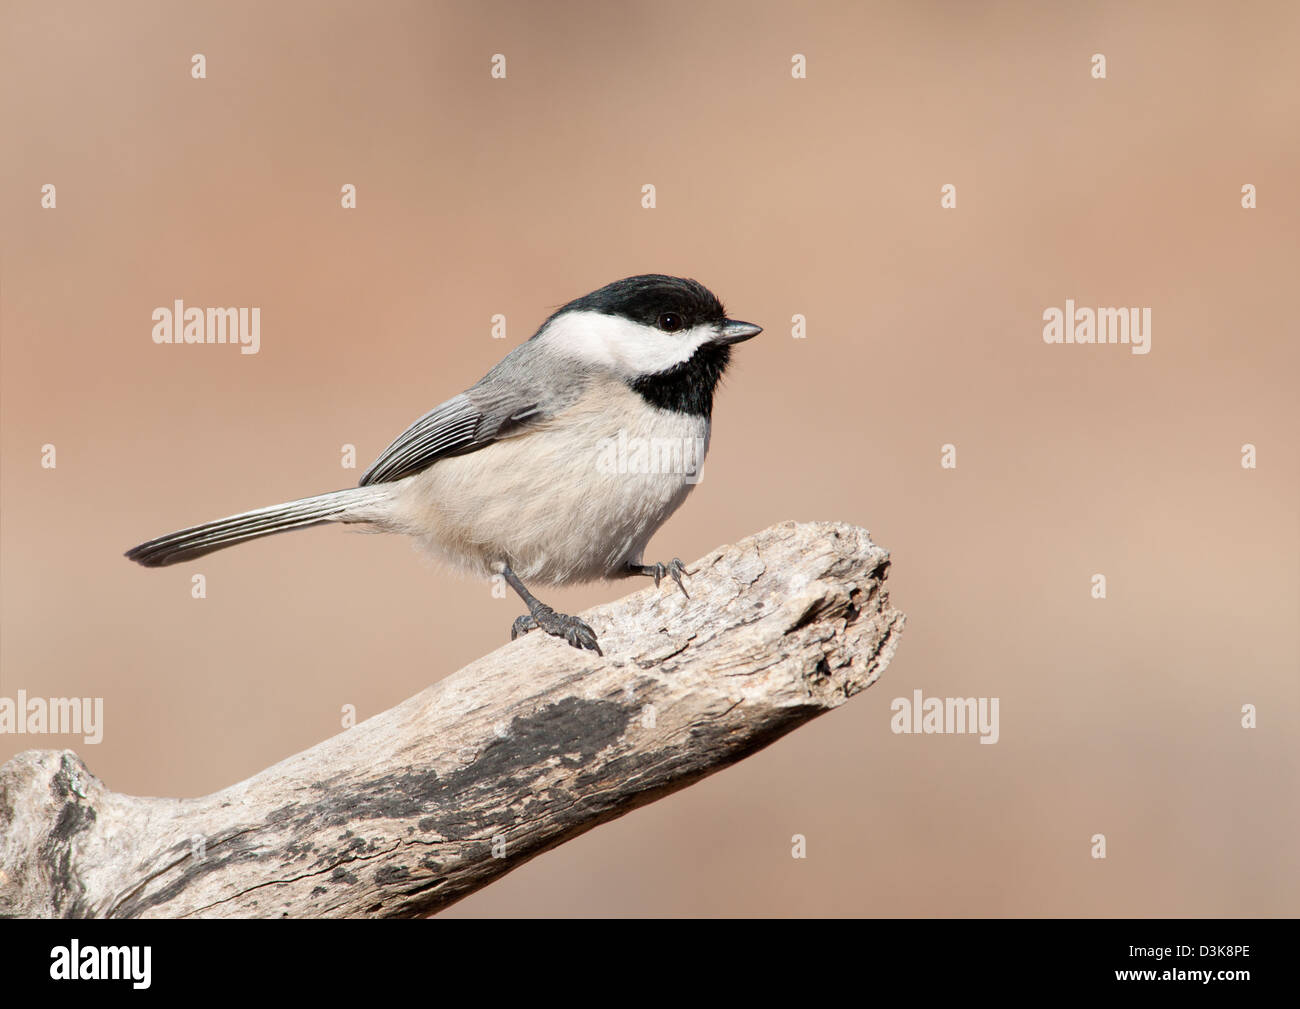 Tiny Carolina Chickadee on a dry limb against muted winter background - Stock Image